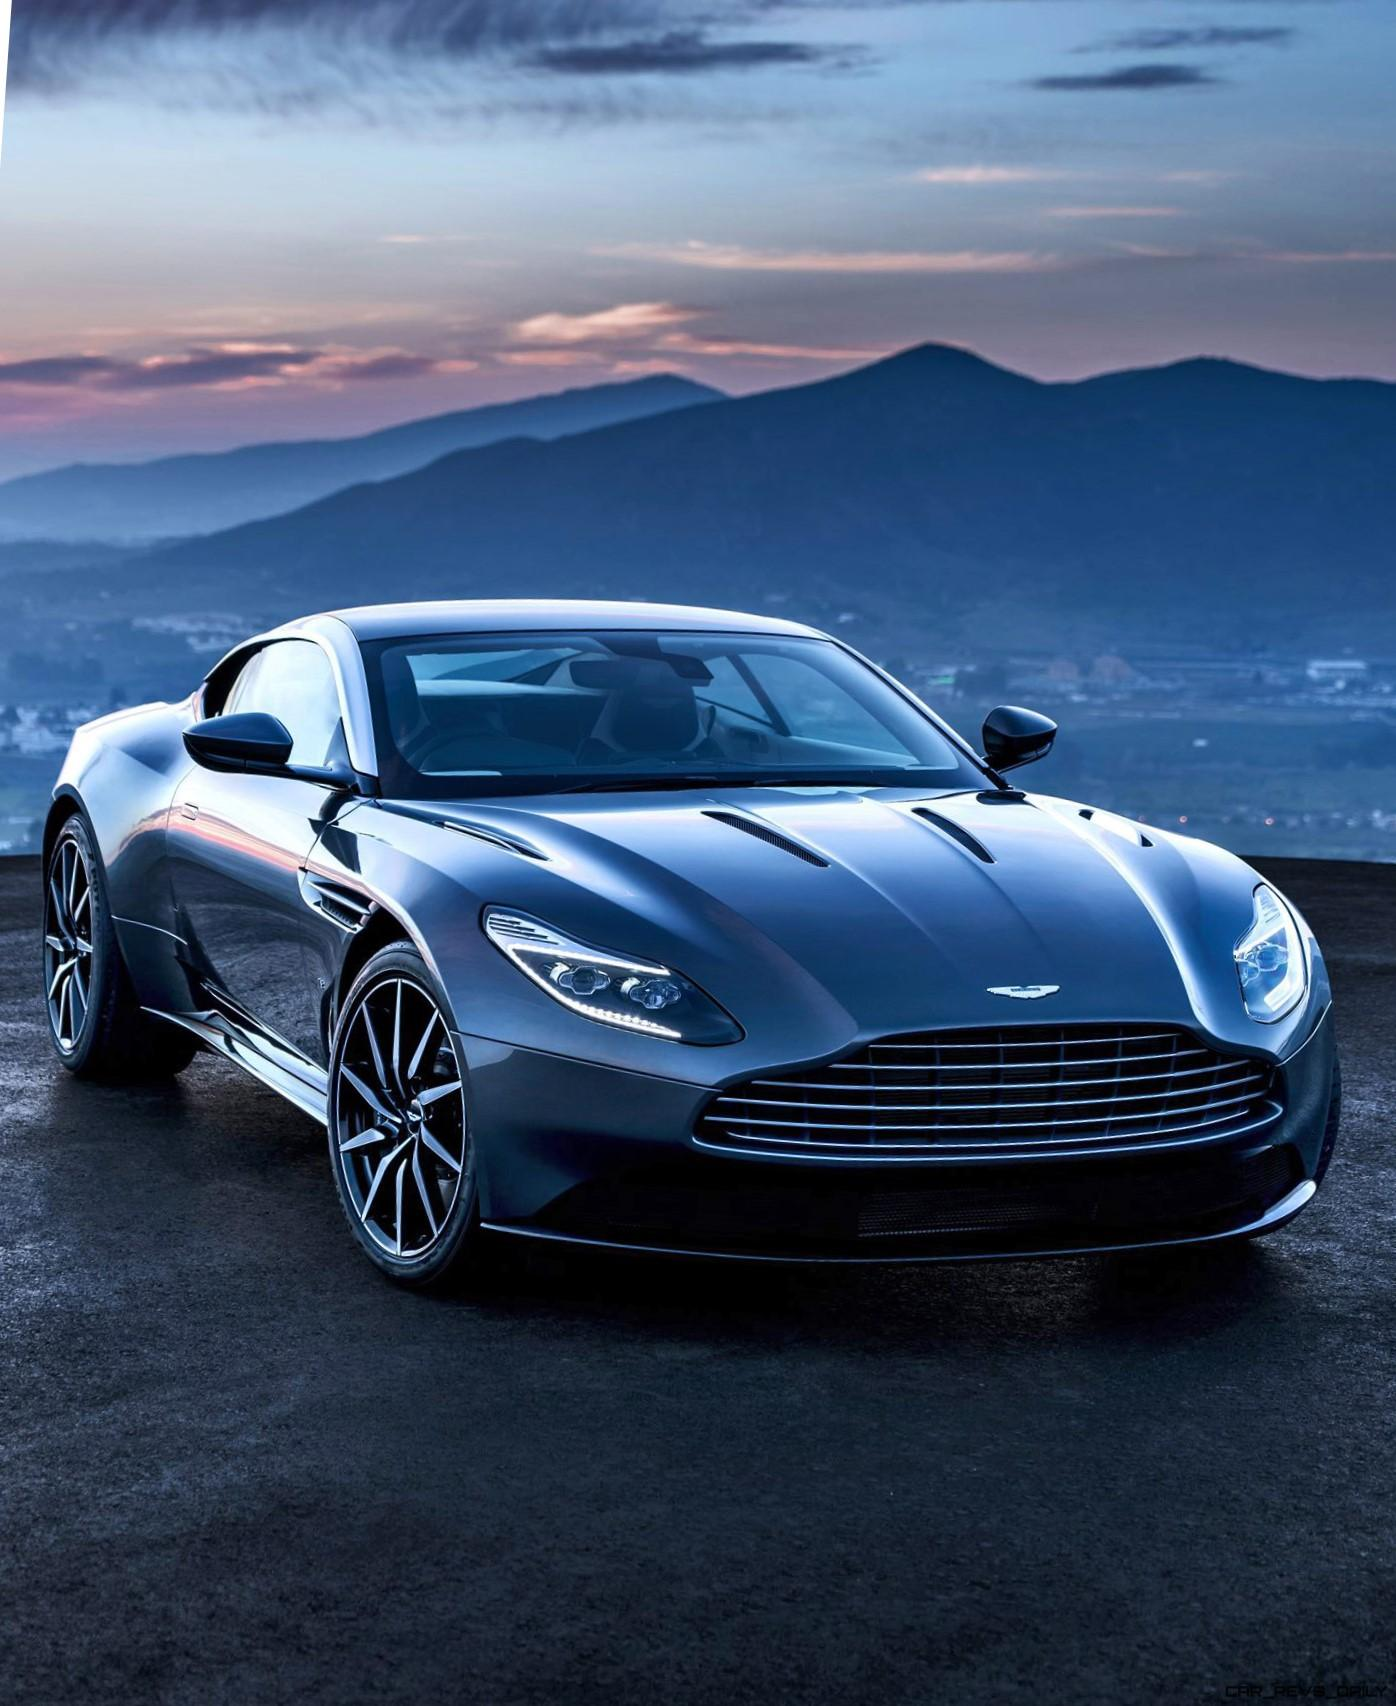 200mph 2017 aston martin db11 all new v12tt design and tech. Black Bedroom Furniture Sets. Home Design Ideas